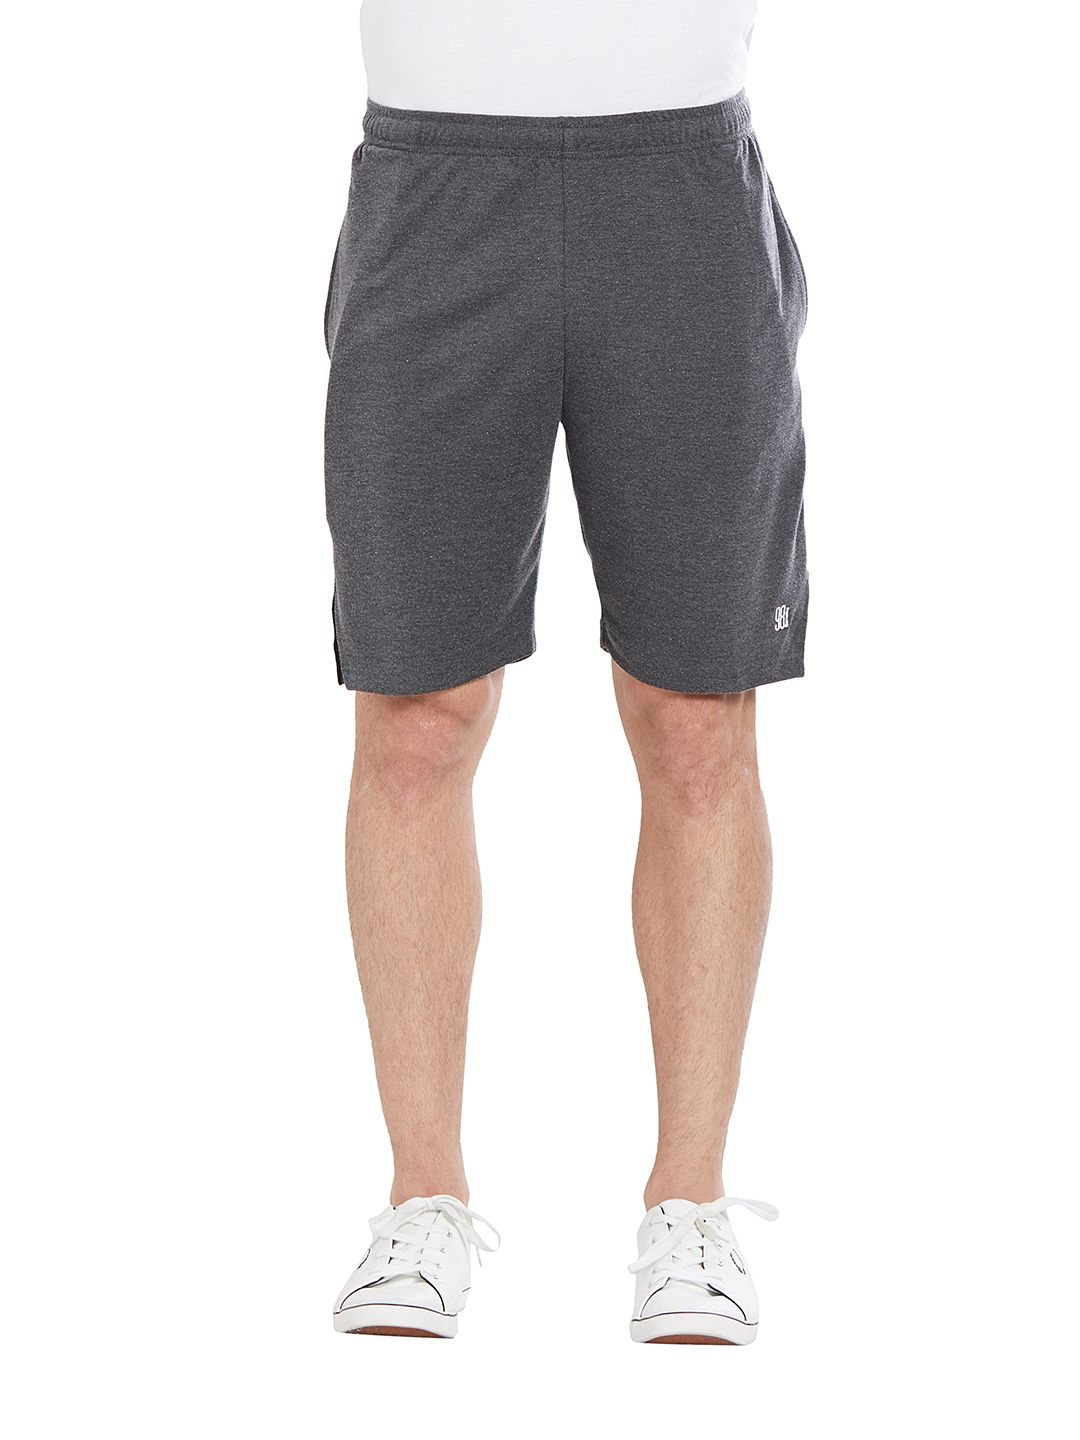 BONATY Grey 100% Polyester Solid  Shorts For Men